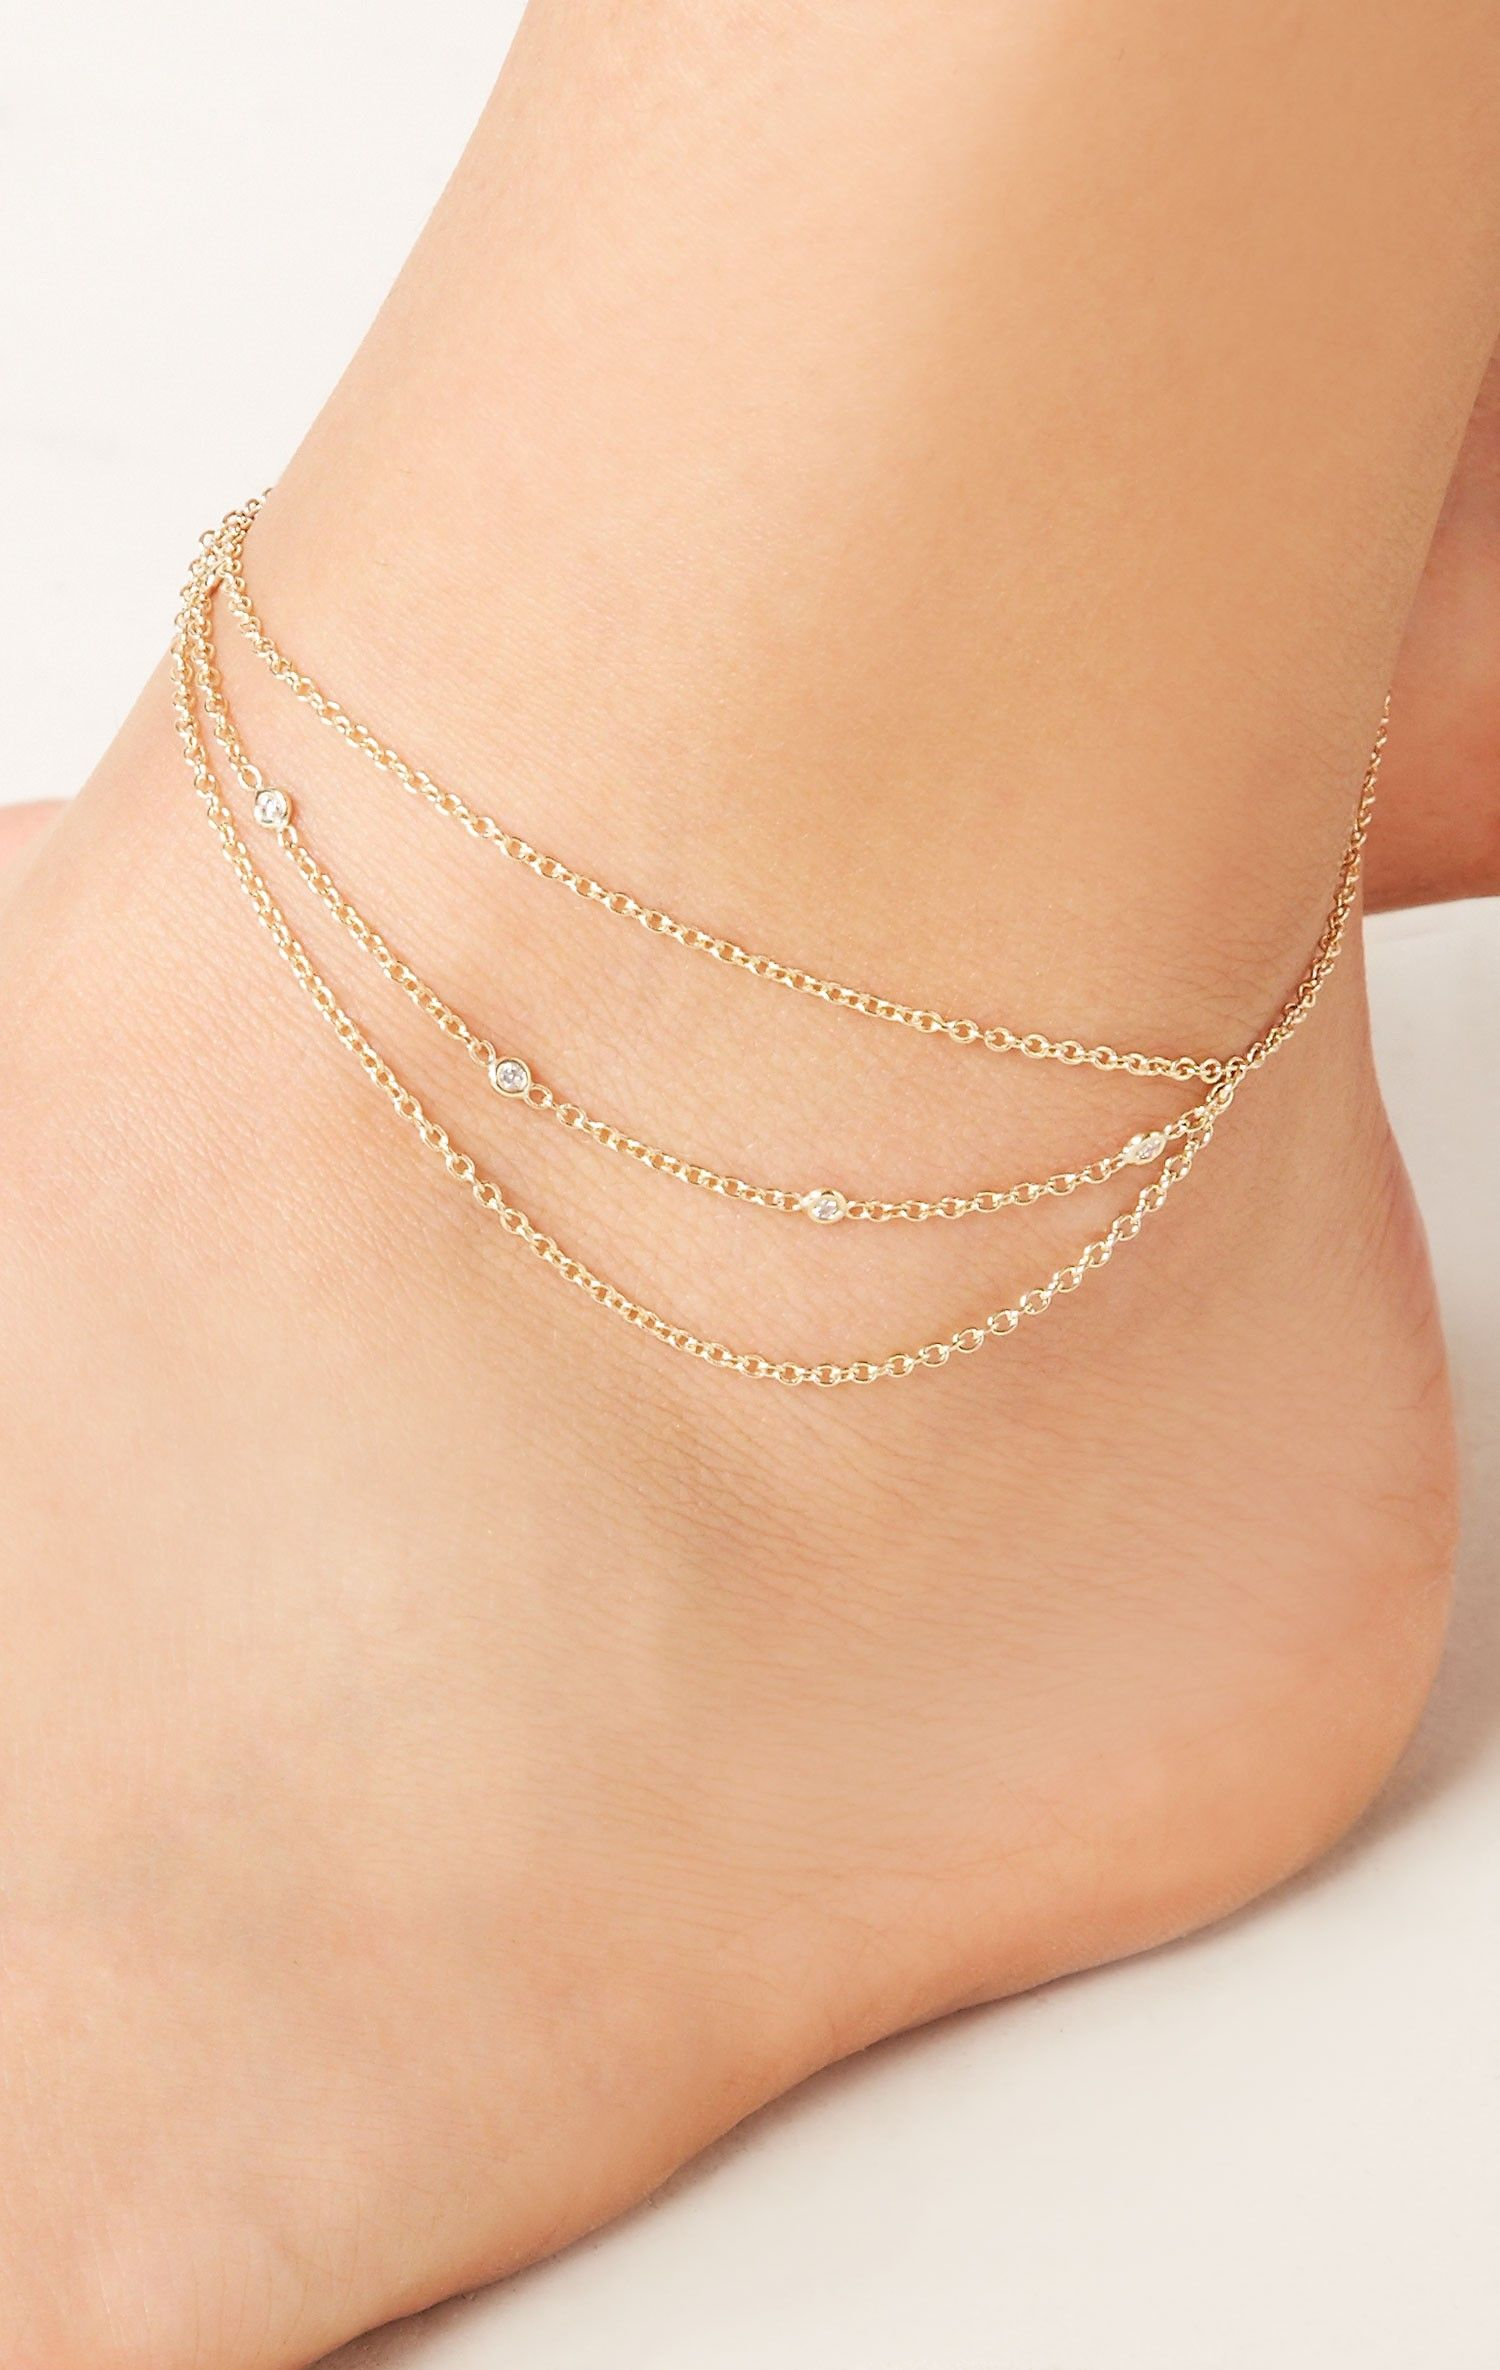 sterling jewelry c nickel cable station anklet free silver bracelet anklets girls bead fine italy chain